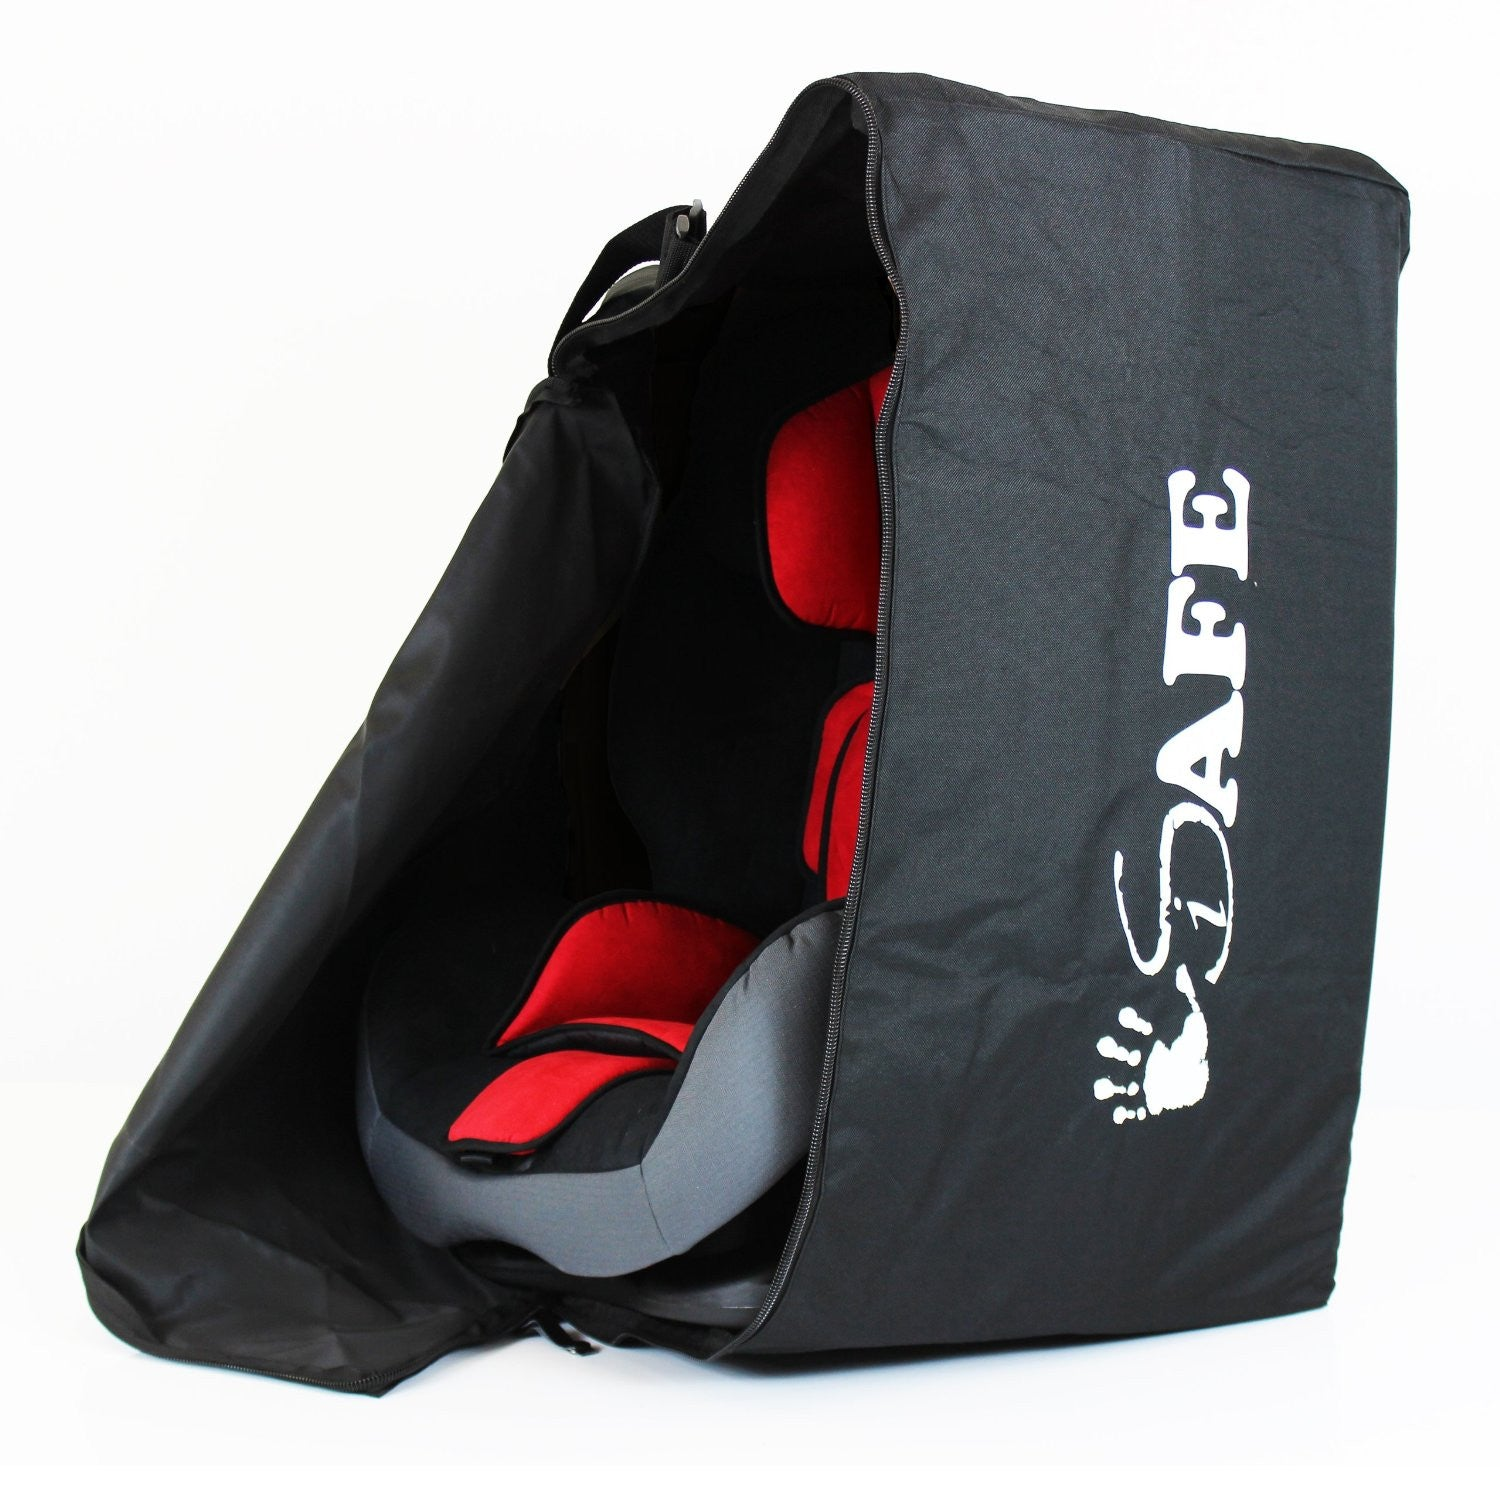 ISafe Universal Carseat Travel Storage Bag For Nania Racer Car Seat Frozen